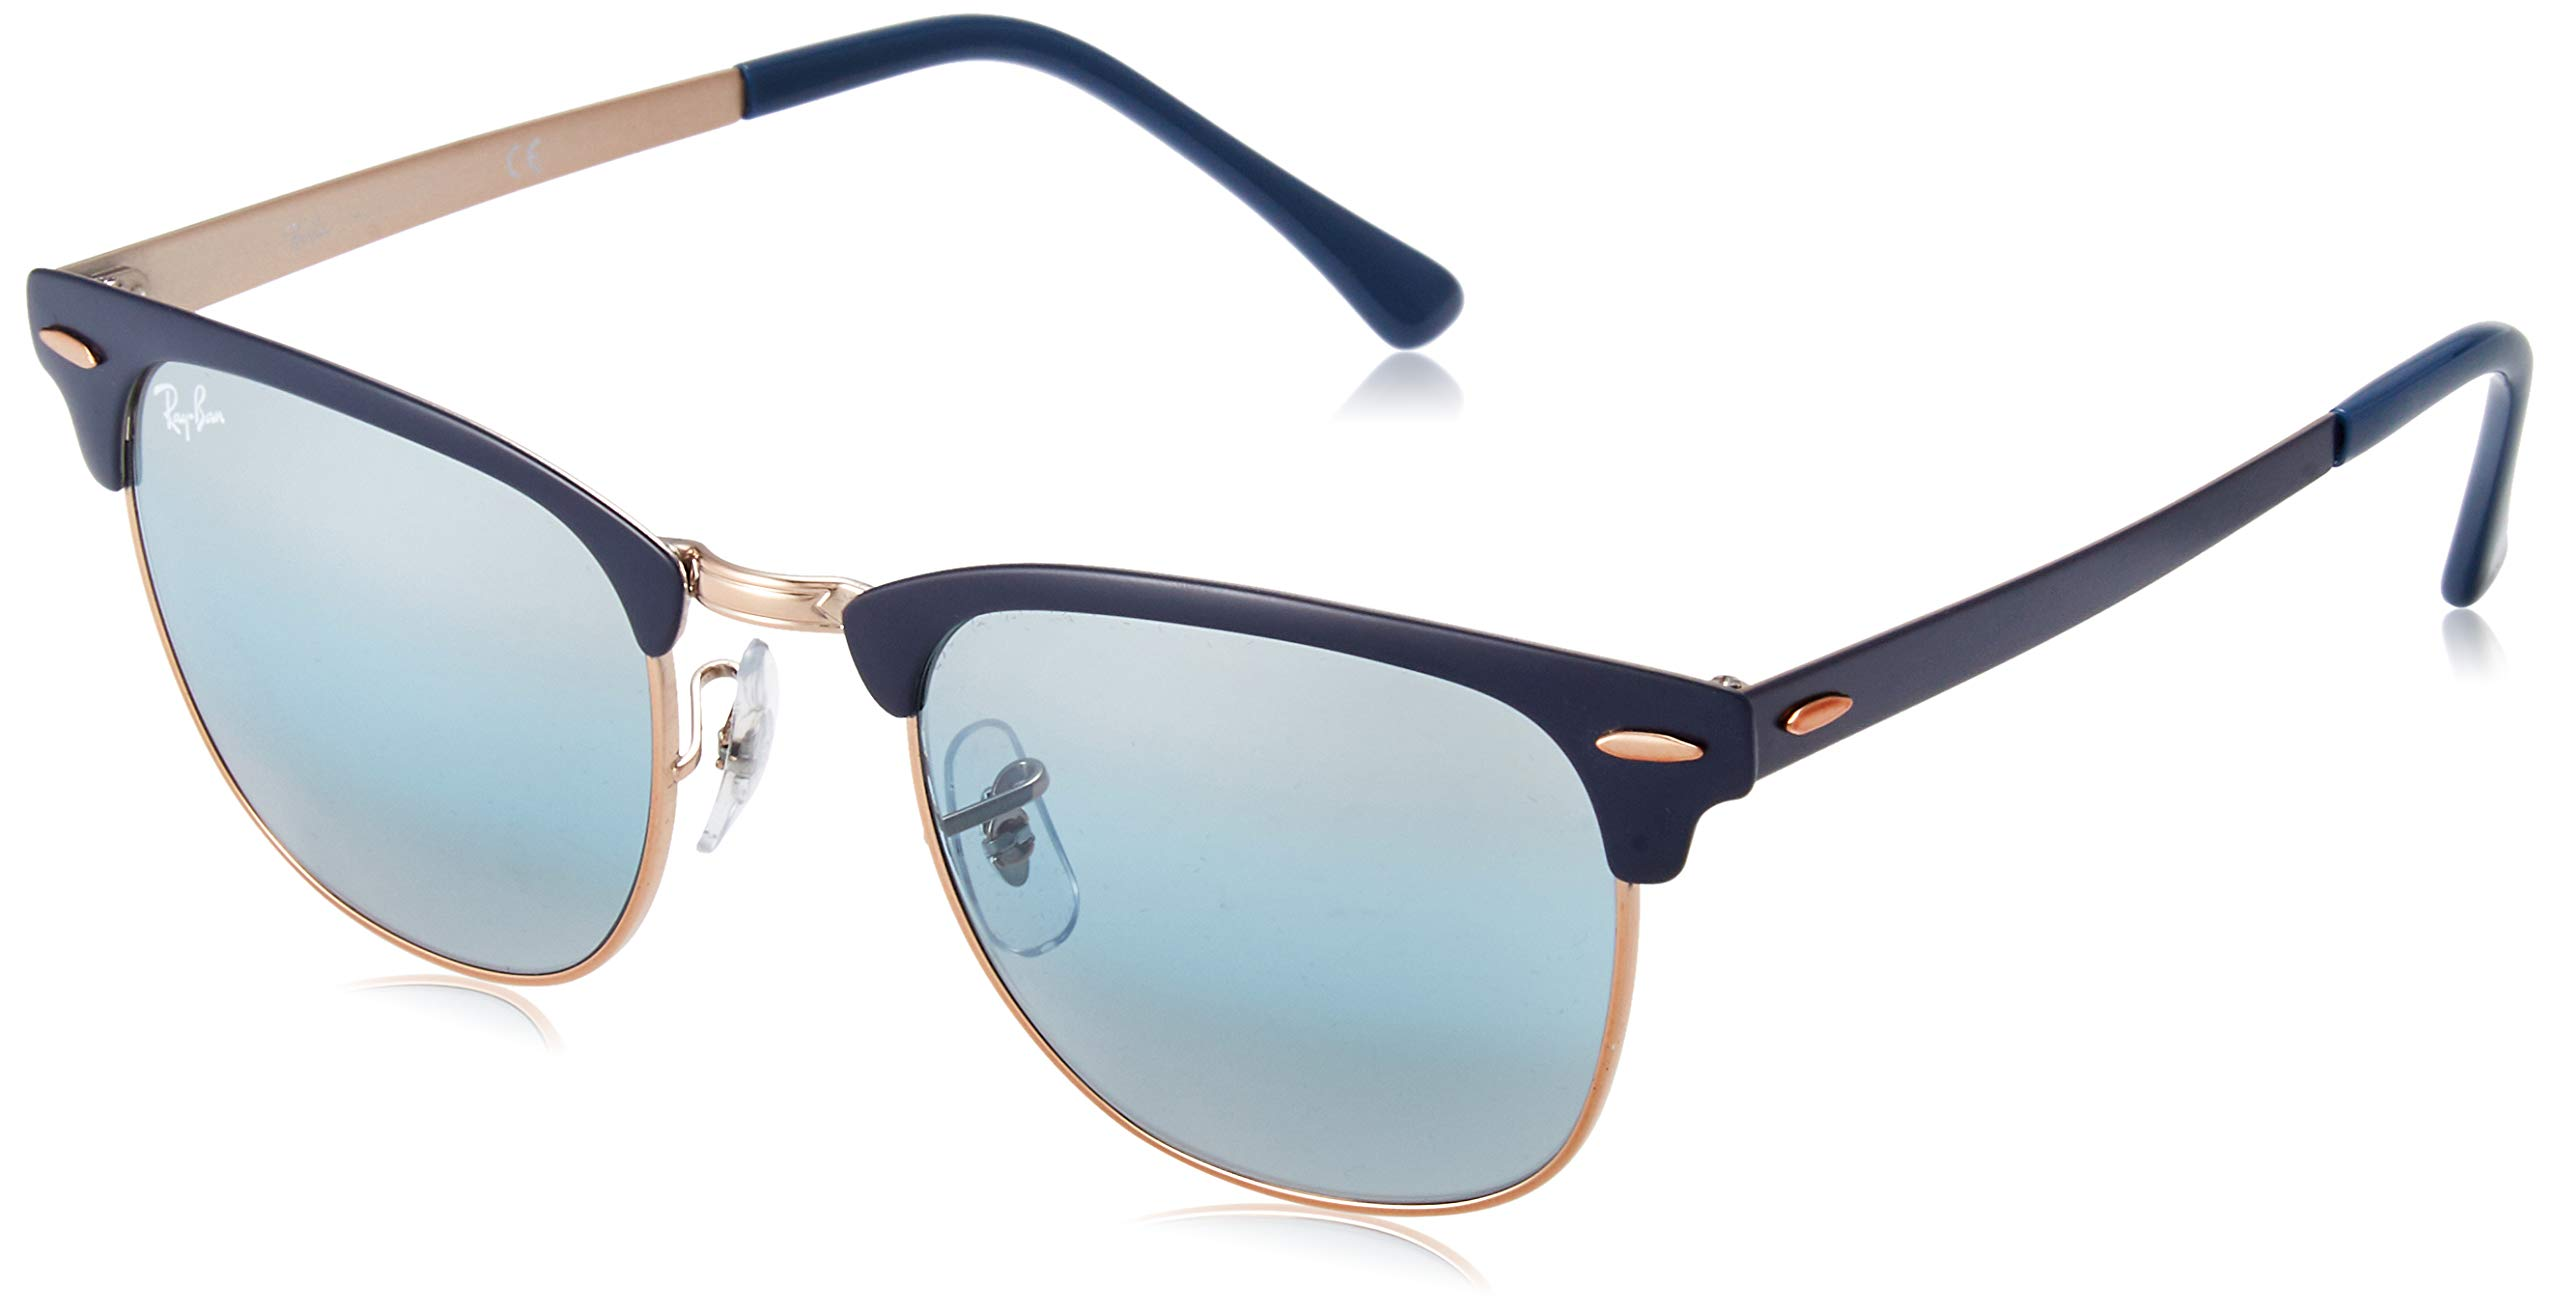 Ray-Ban RB3716 Clubmaster Metal Square Sunglasses, Blue on Copper/Blue Gradient Mirror, 51 mm